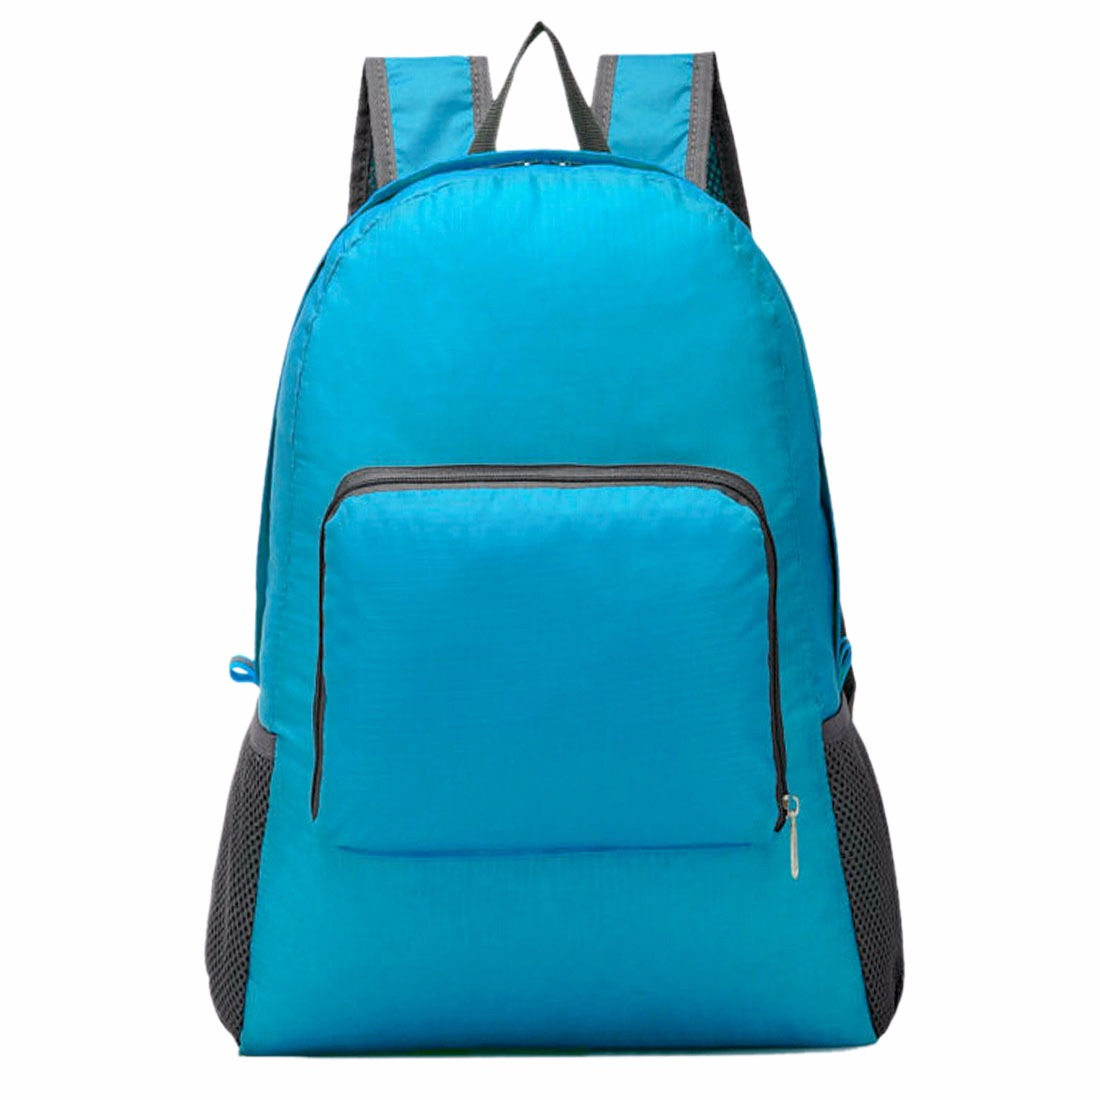 New Women Men Waterproof Nylon bag Foldable travel climbing shoulder backpack